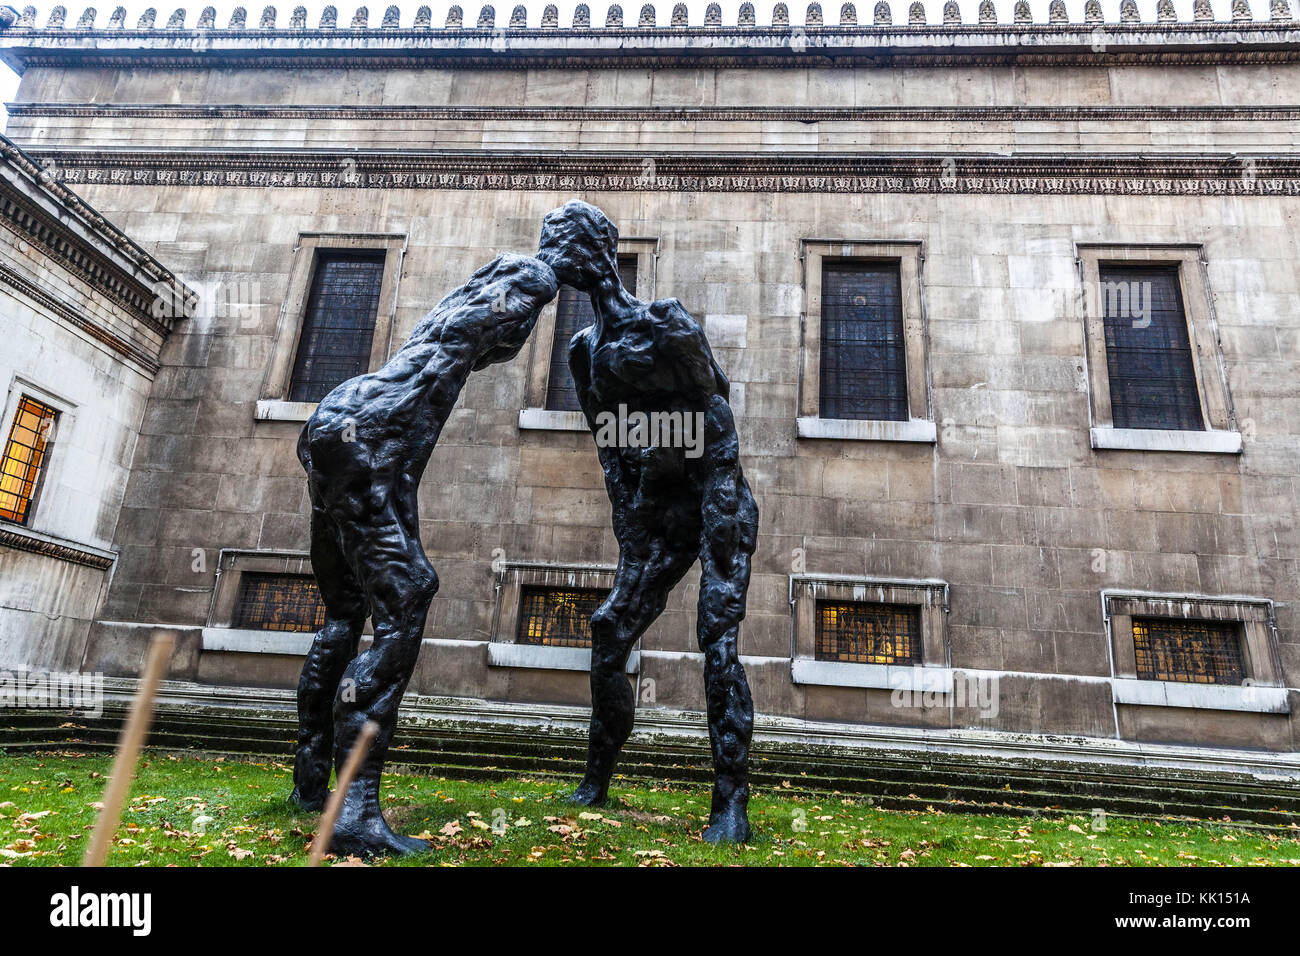 Brothers, a 6-meter-tall bronze sculpture by David Breuer-Weil and now installed in the church gardens at Saint - Stock Image